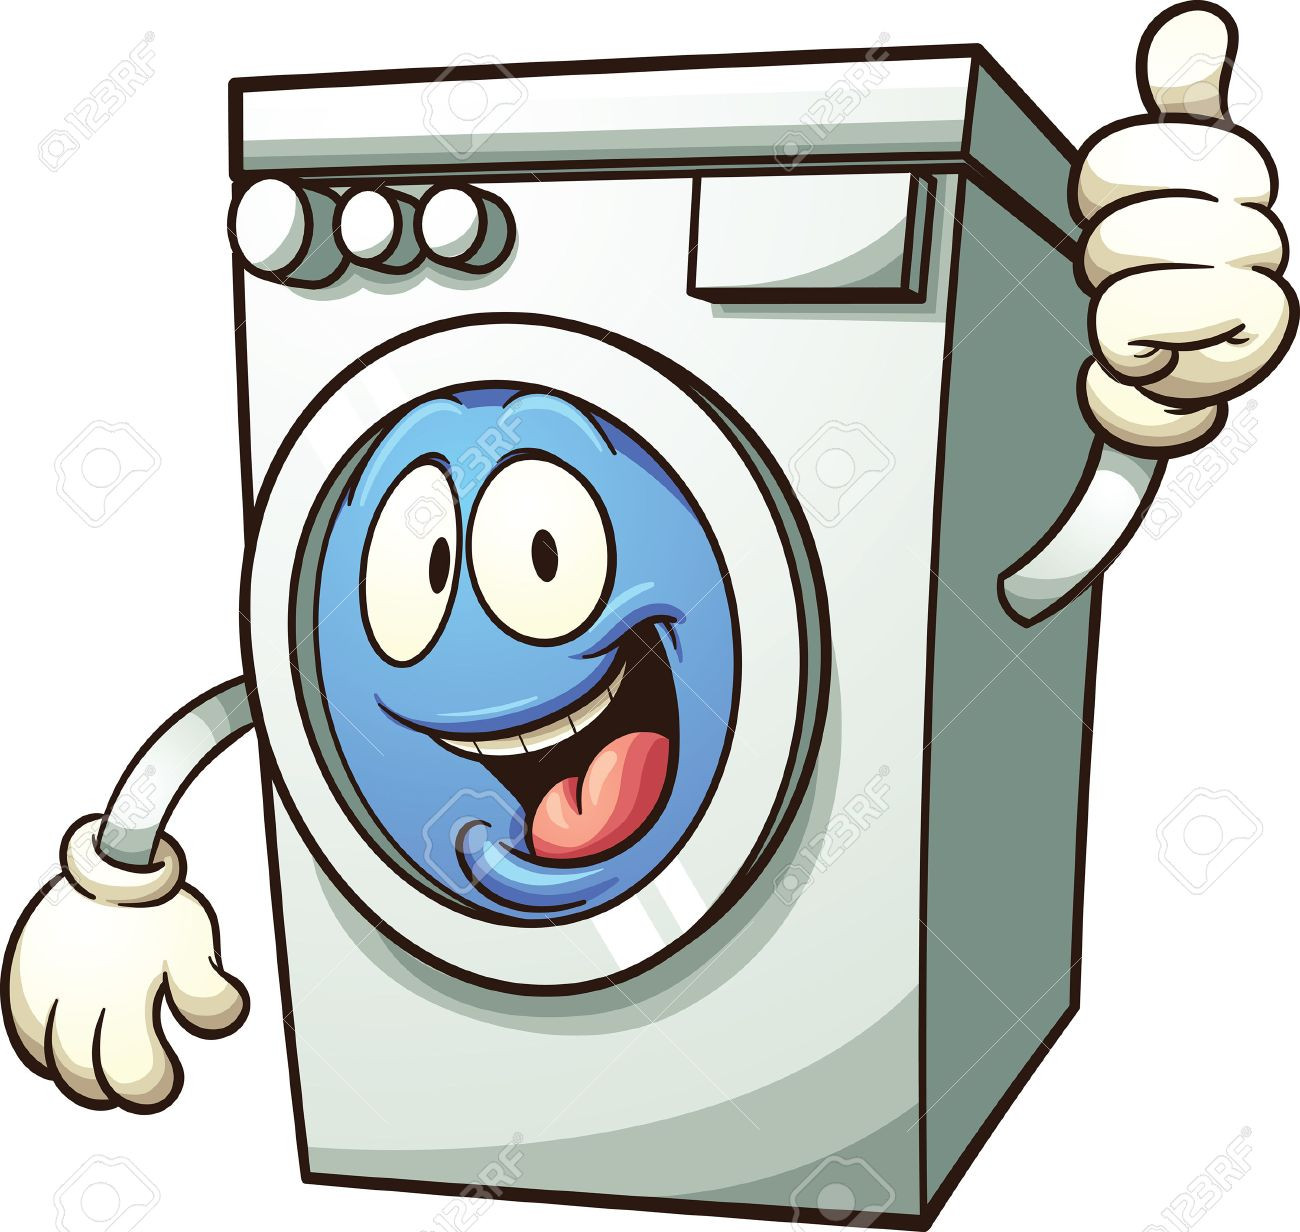 1300x1232 Cartoon Washing Machine Vector Clip Art Illustration With Simple